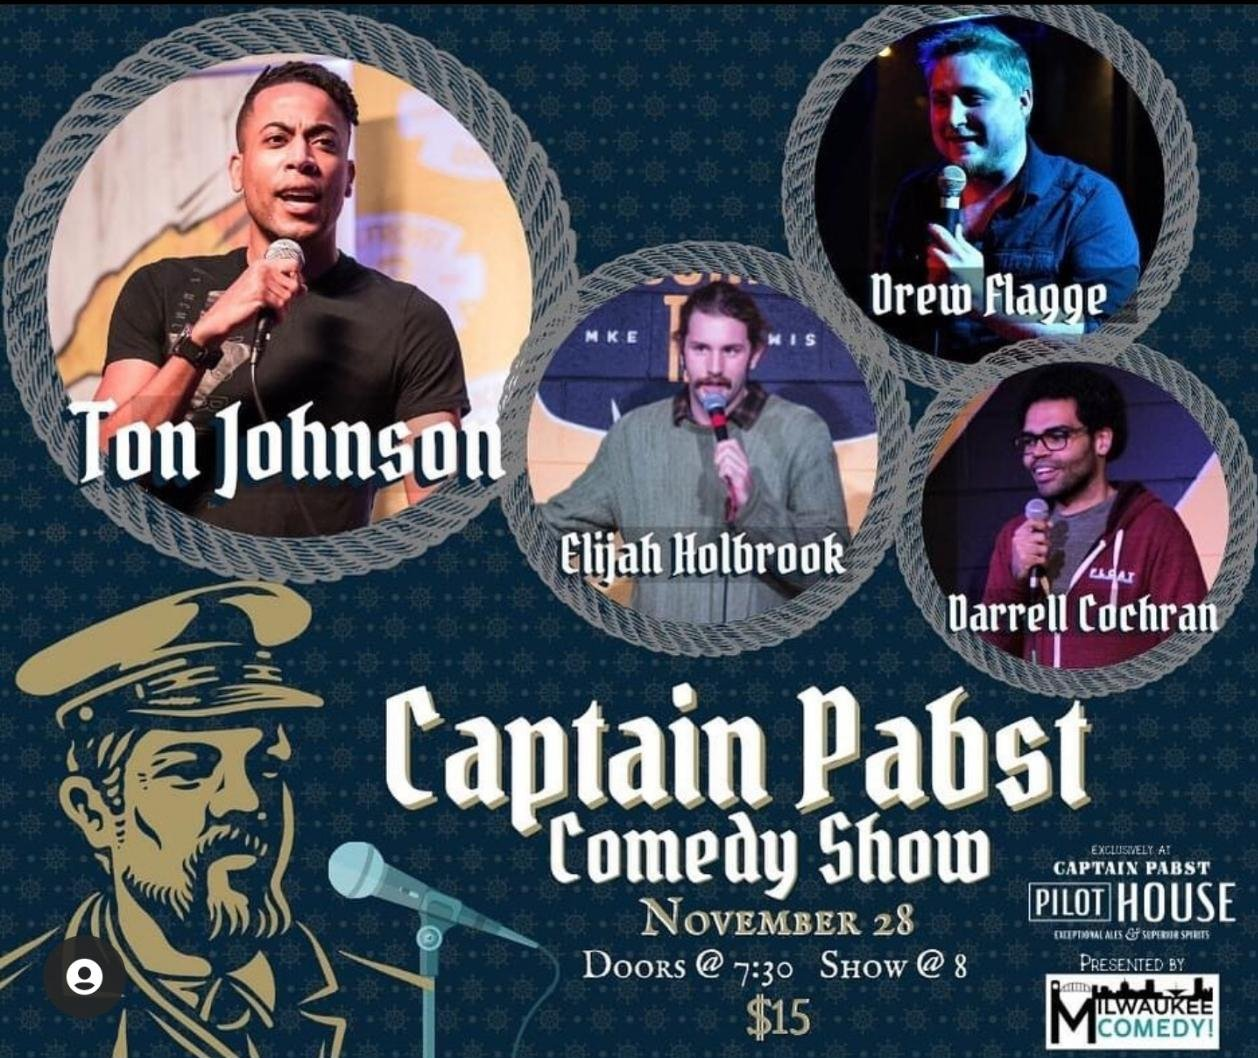 Performing on Saturday<br>@ Captain Pabst Pilot House<br>1037 W Juneau Ave, Milwaukee, WI 53233<br>Show starts at 8pm